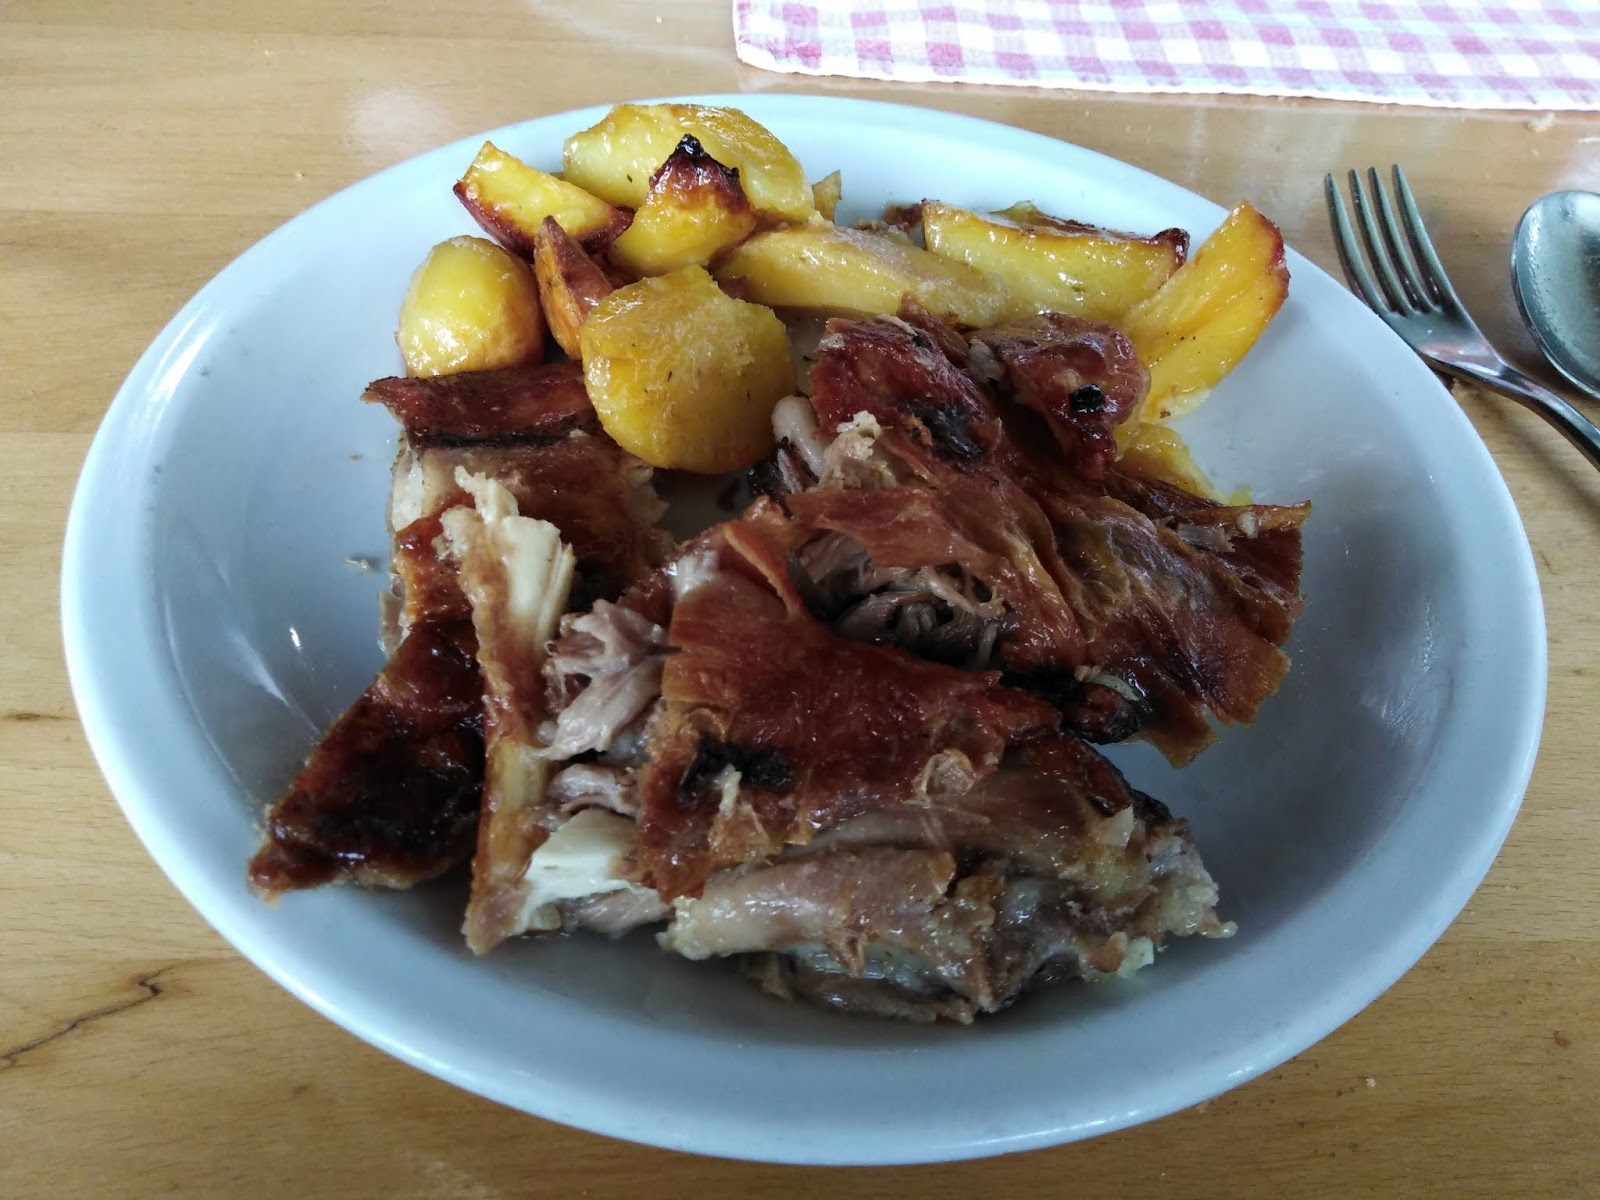 K M Cheng-Travel Journal: Europe (Zagreb. Croatia) March 2019 D-13 (Part 4) Food & Hotel